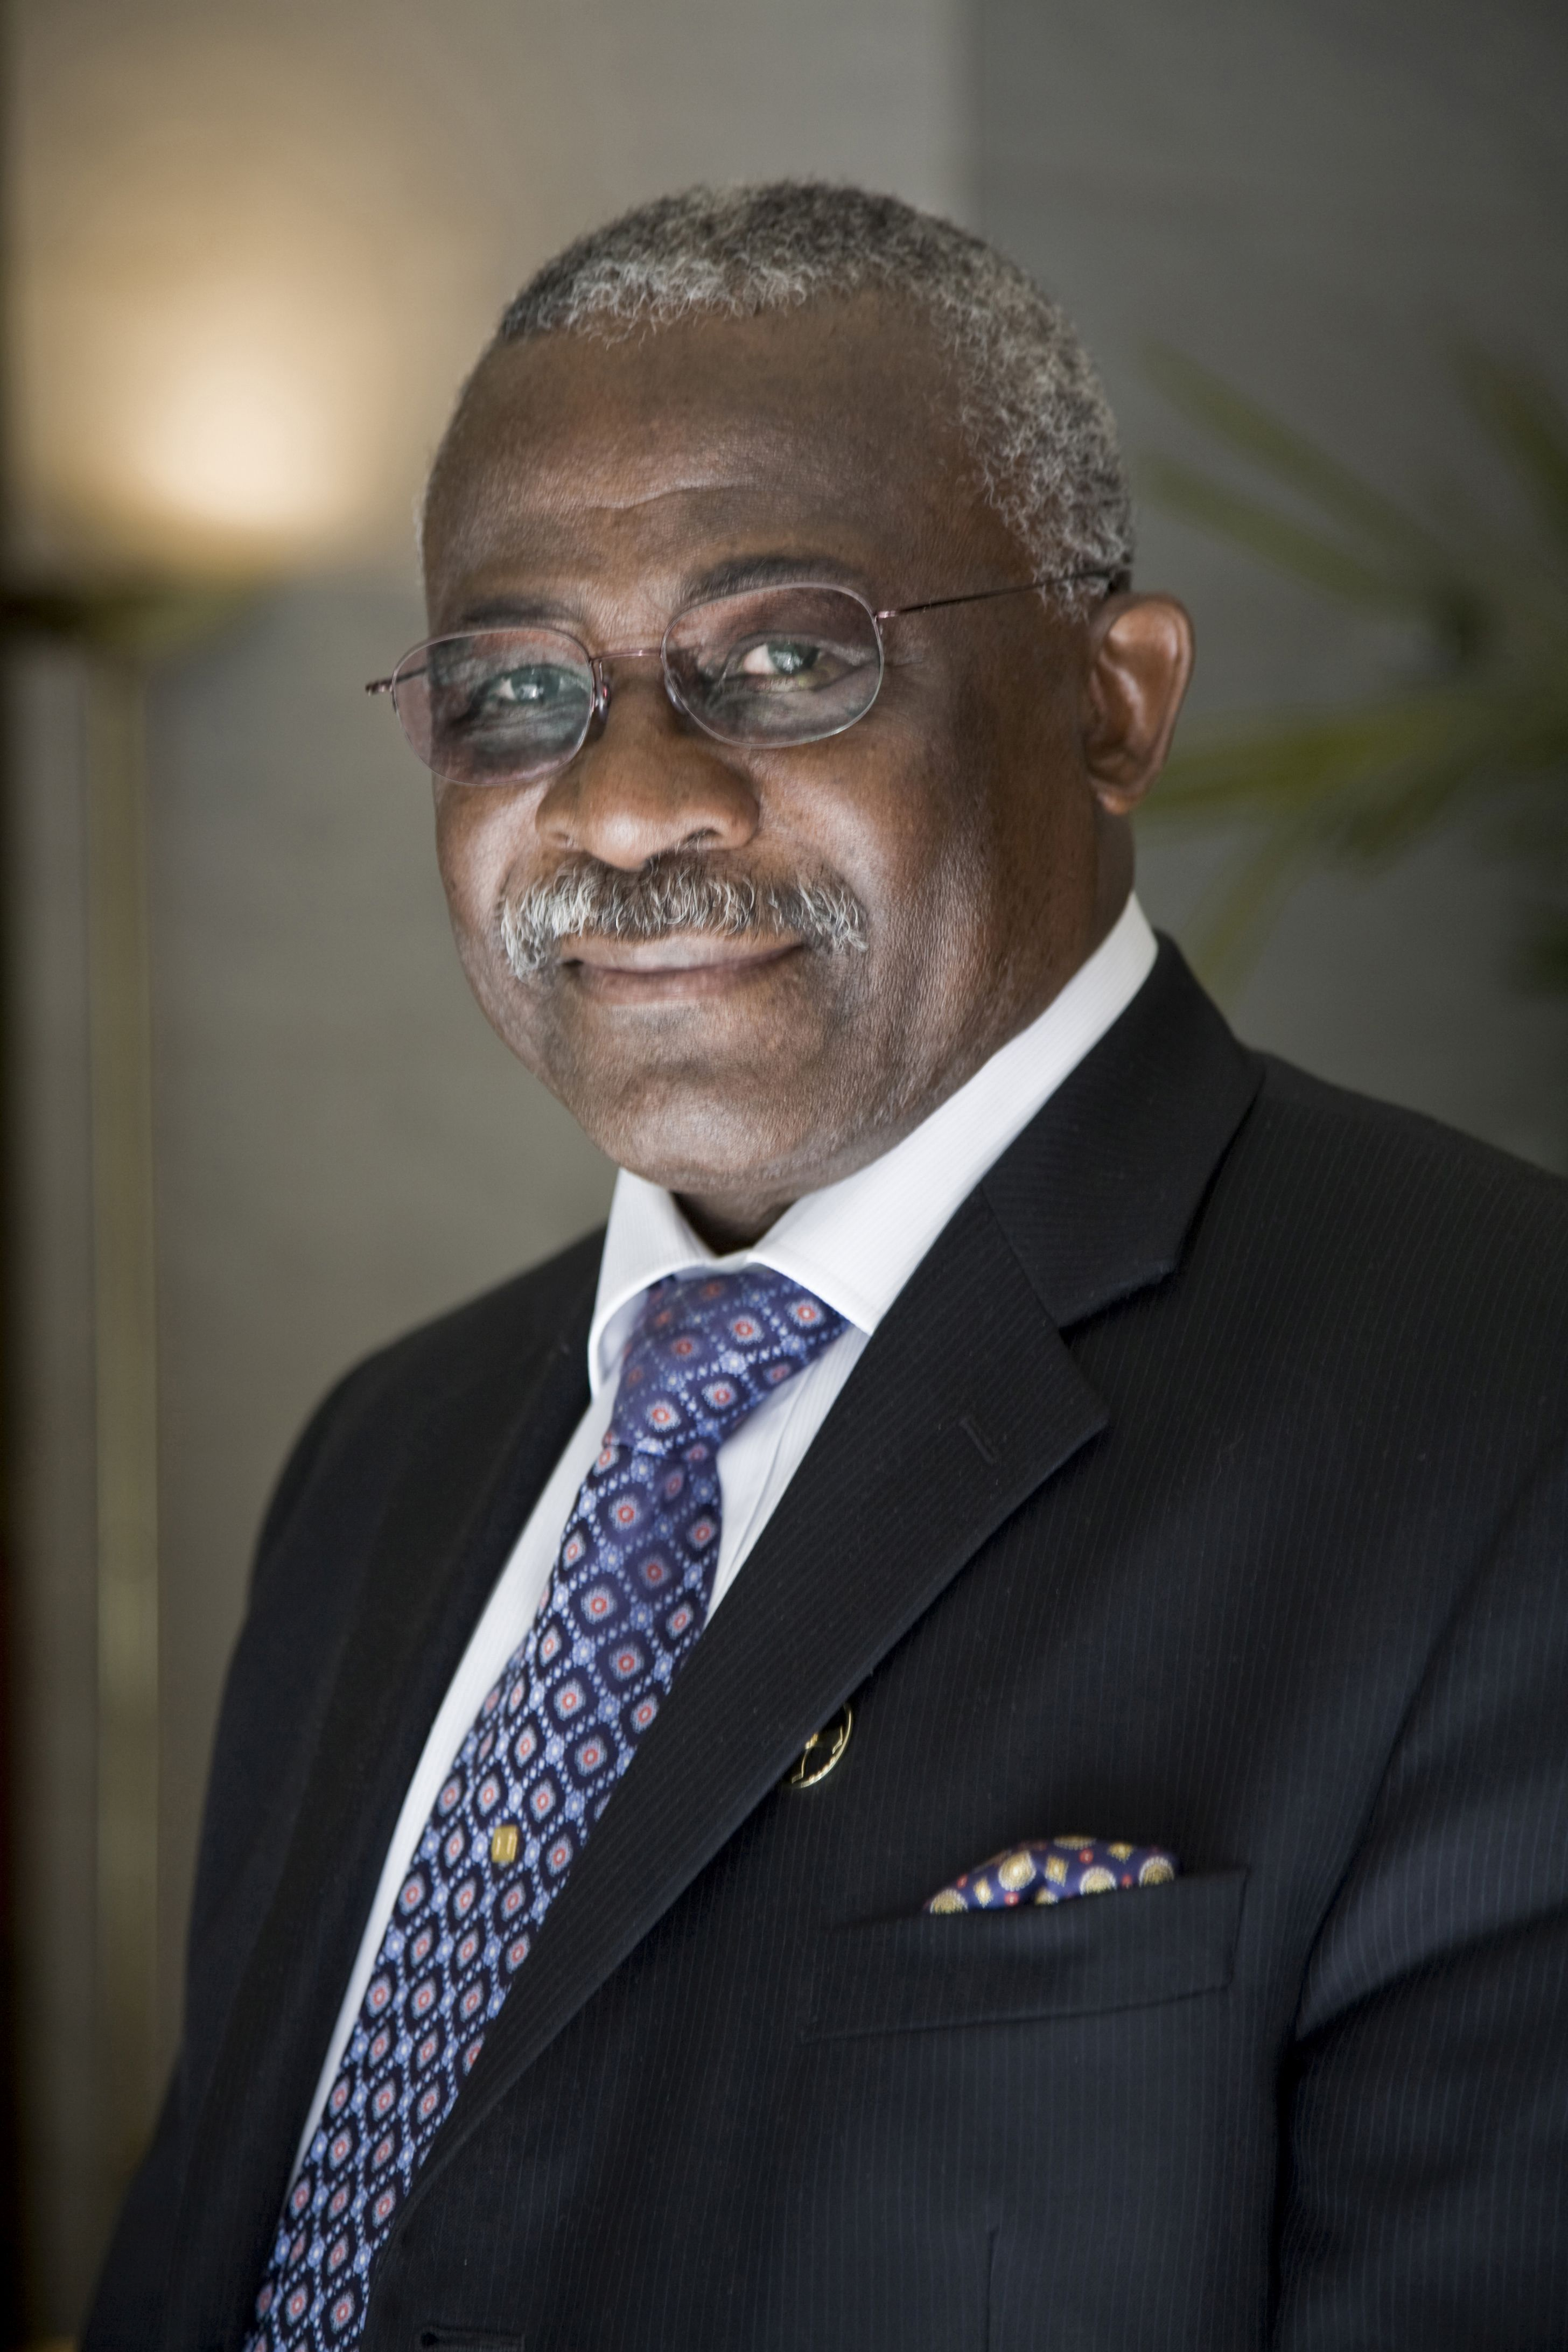 Kanayo F. Nwanze, President of the UN's International Fund for Agricultural Development (Photo Courtesy of Africa Renewal)